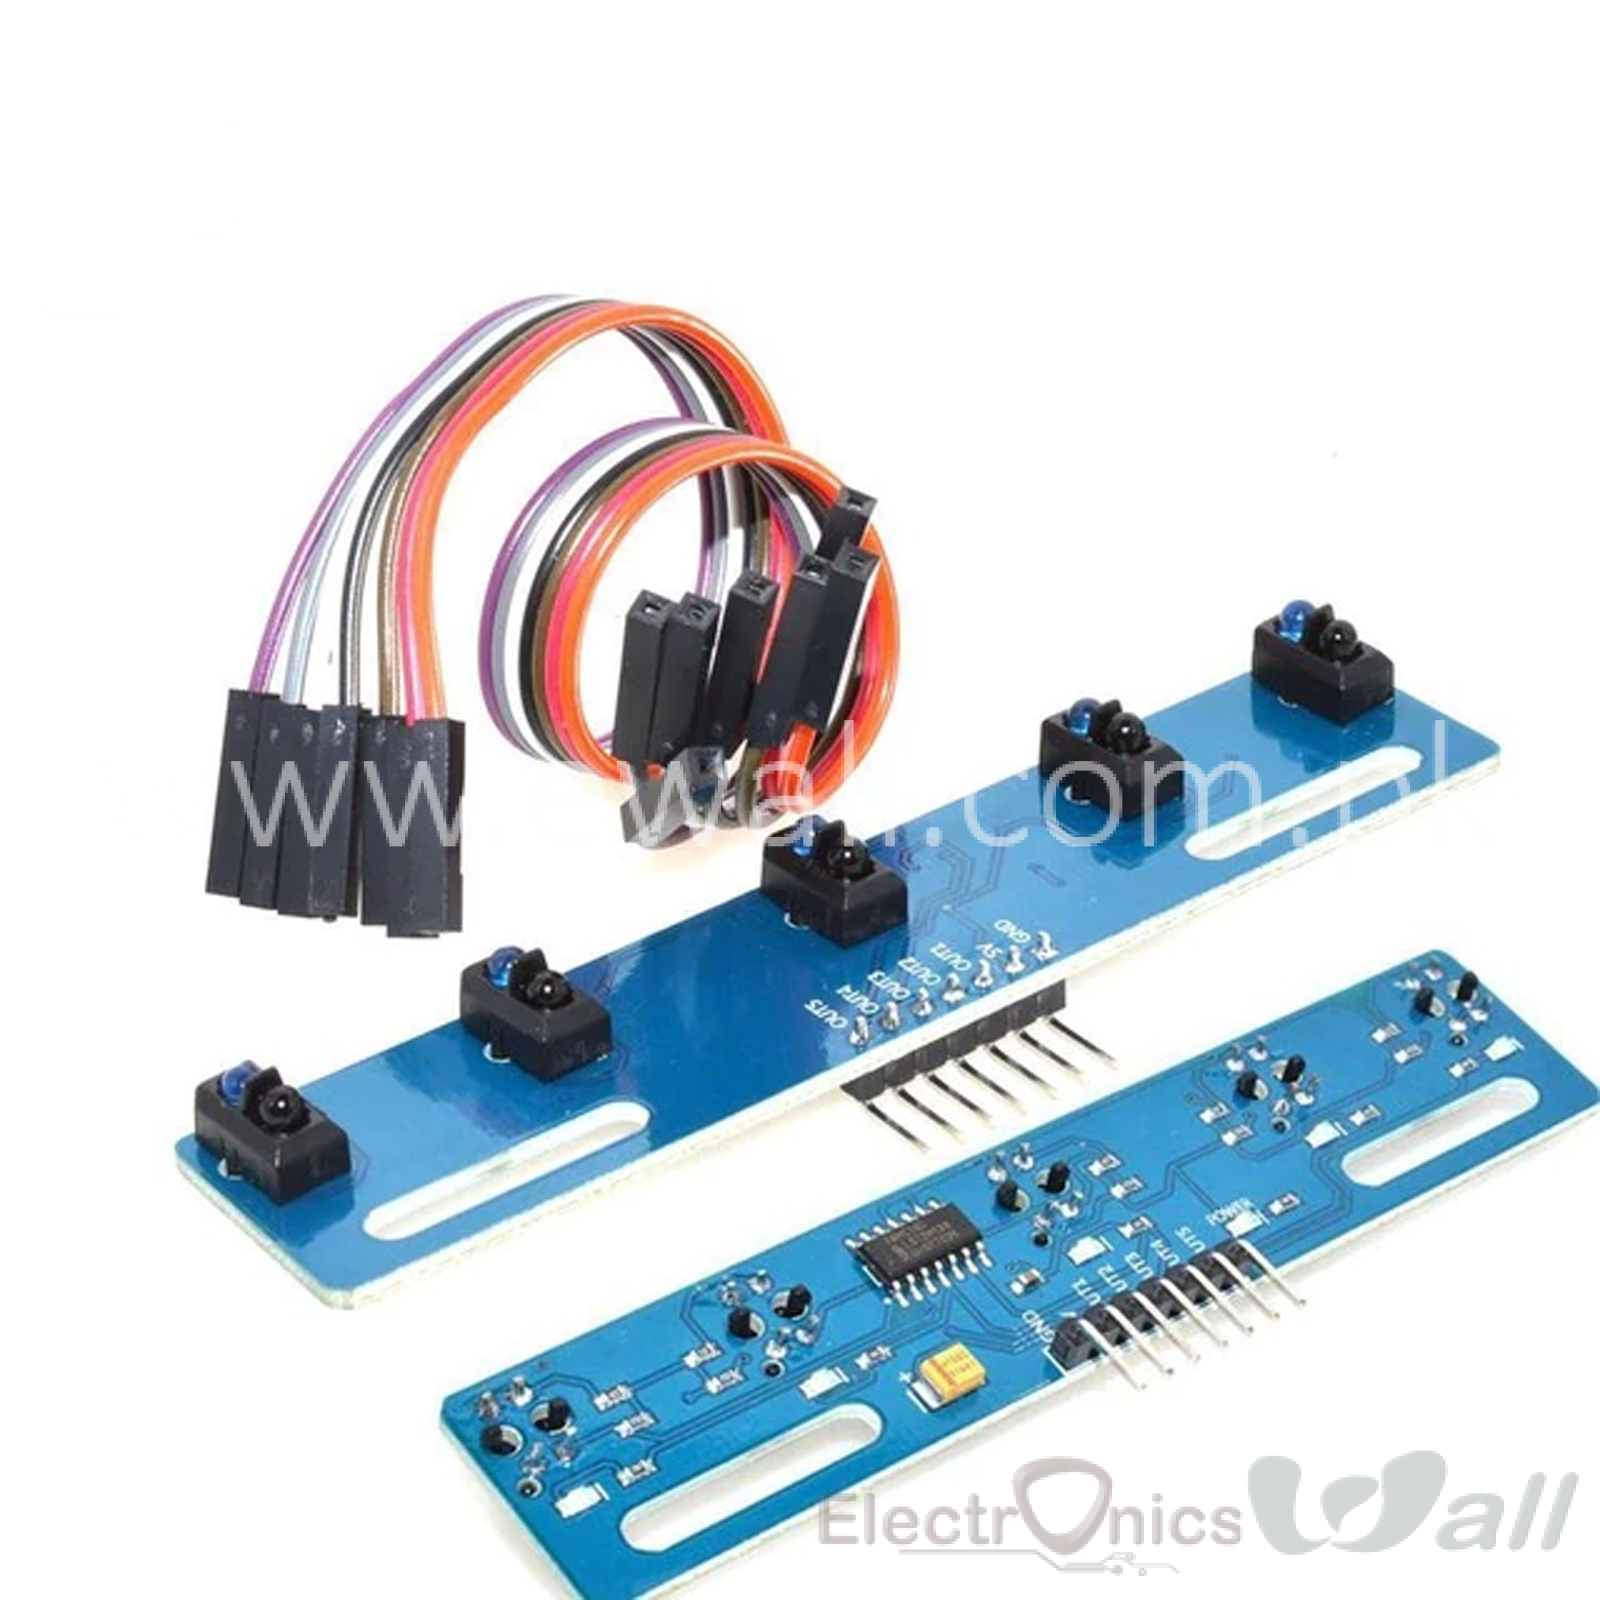 5-Ch way Line Tracking Infrared Sensor Board Module TCRT5000L for Line following Robot